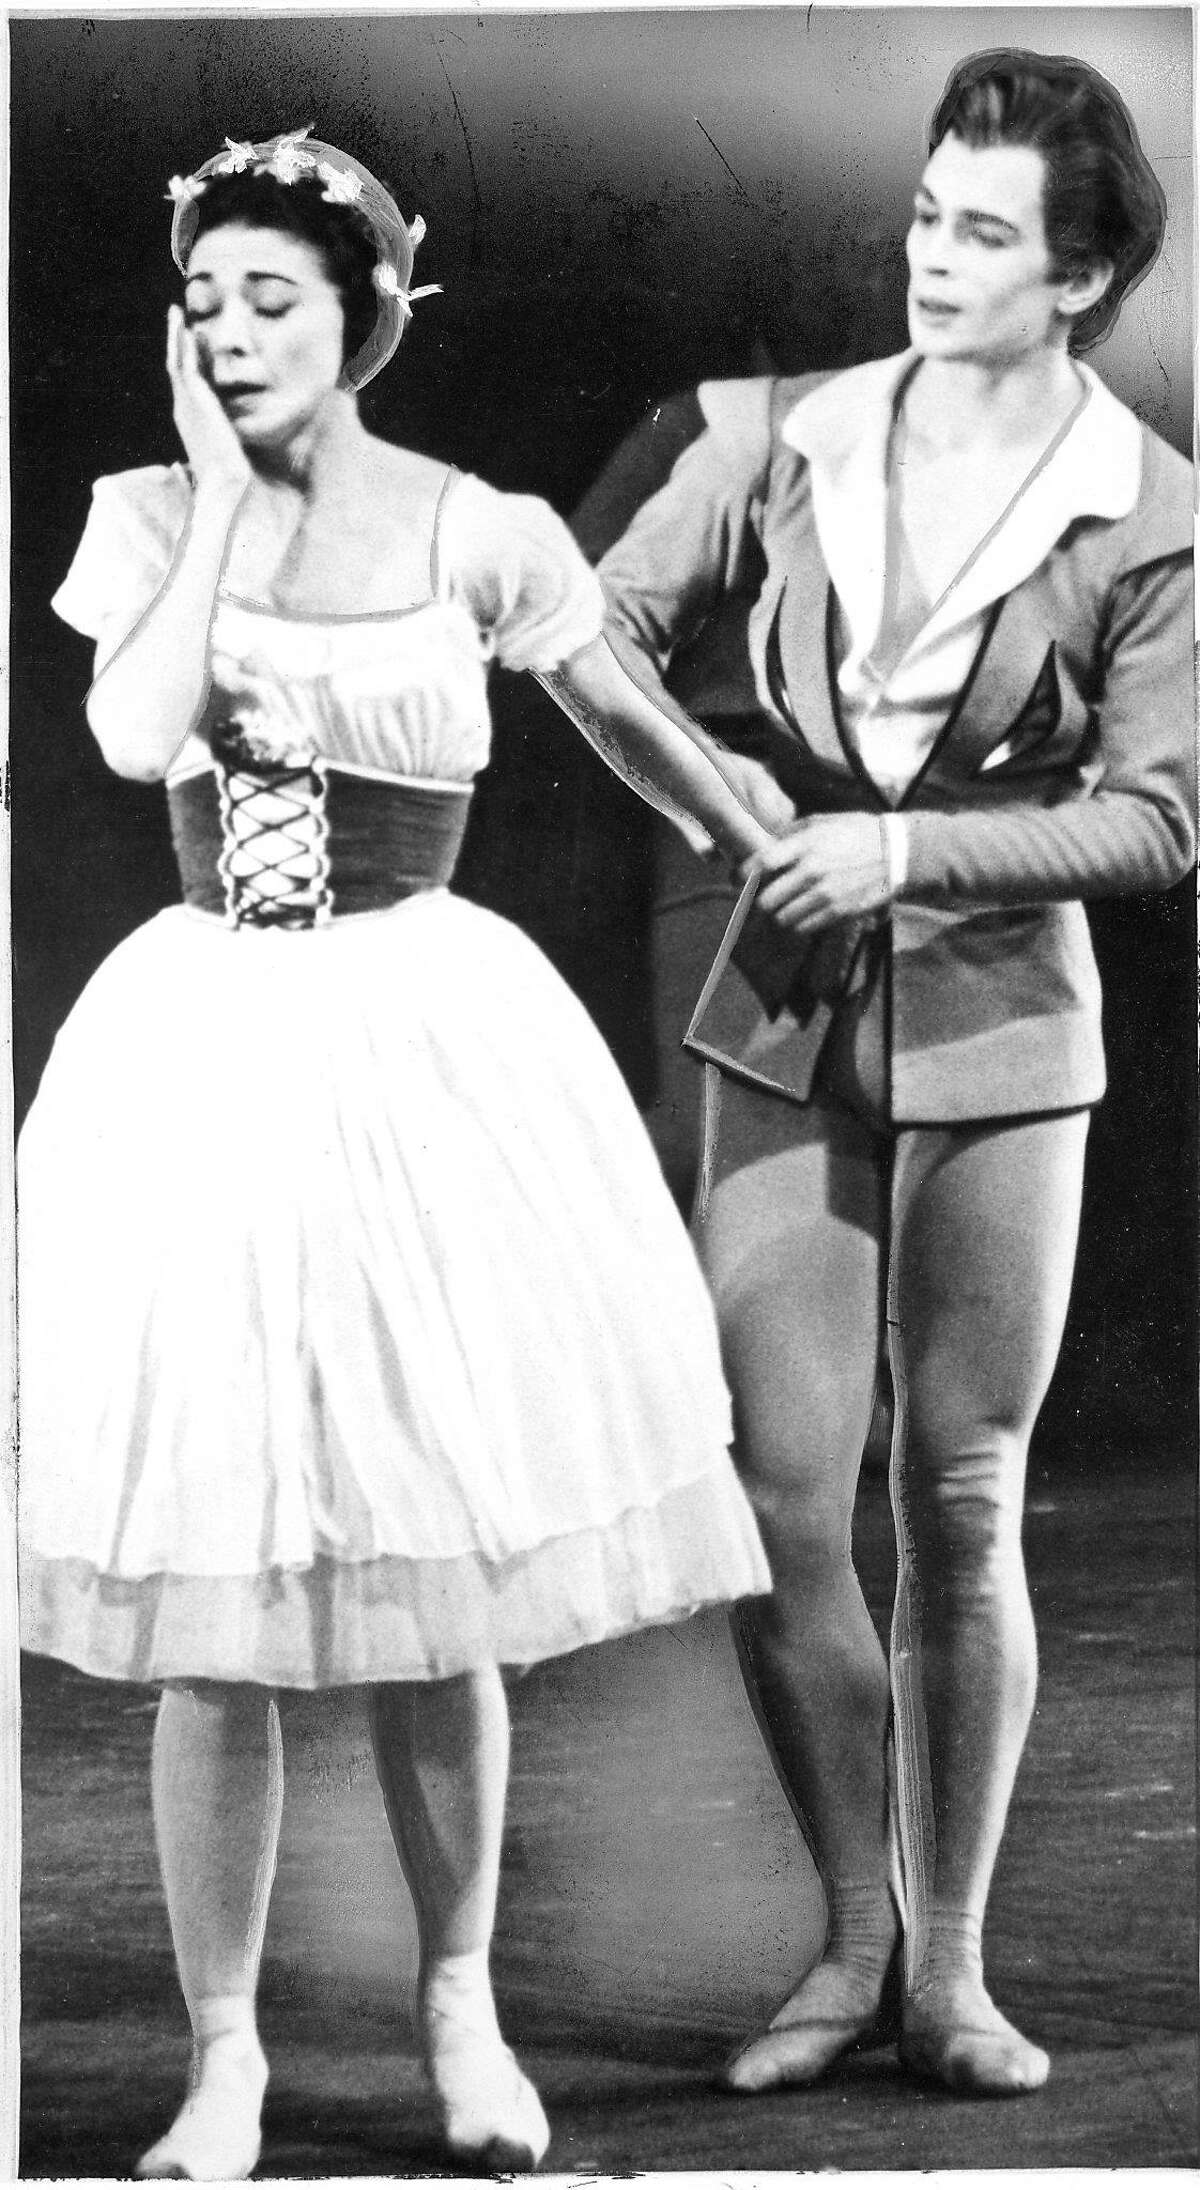 Rudoplph Nureyev and Dame Margot Fonteyn are performing in Giselle Photo ran 07/12/1967, p. 1 Handout